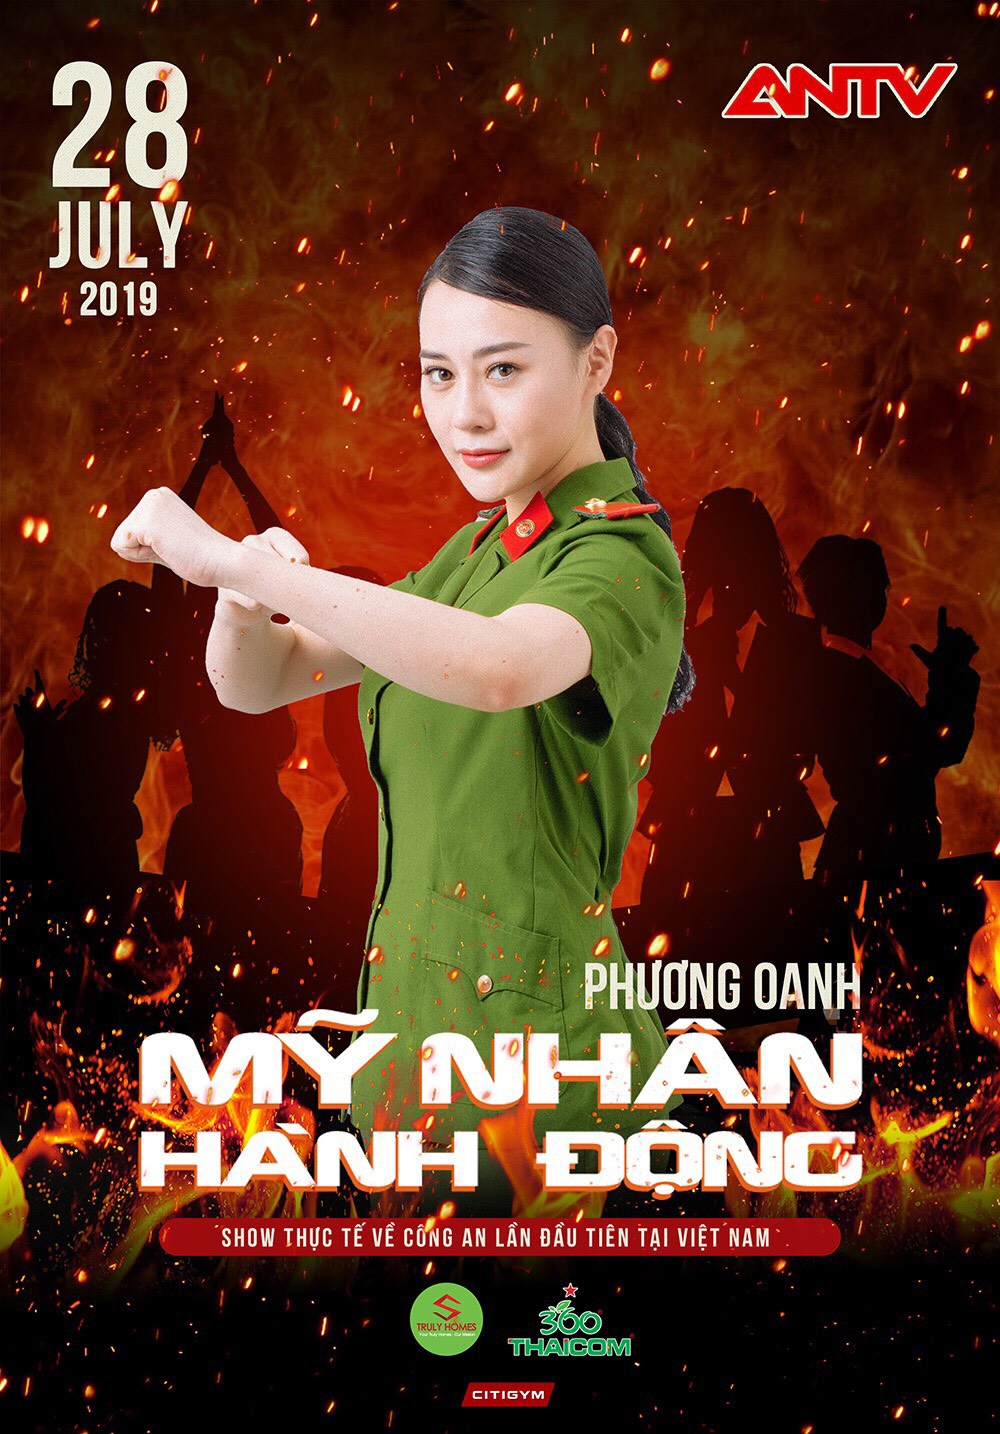 phuong oanh tiet lo chi co the la my nhan hanh dong khi con doc than